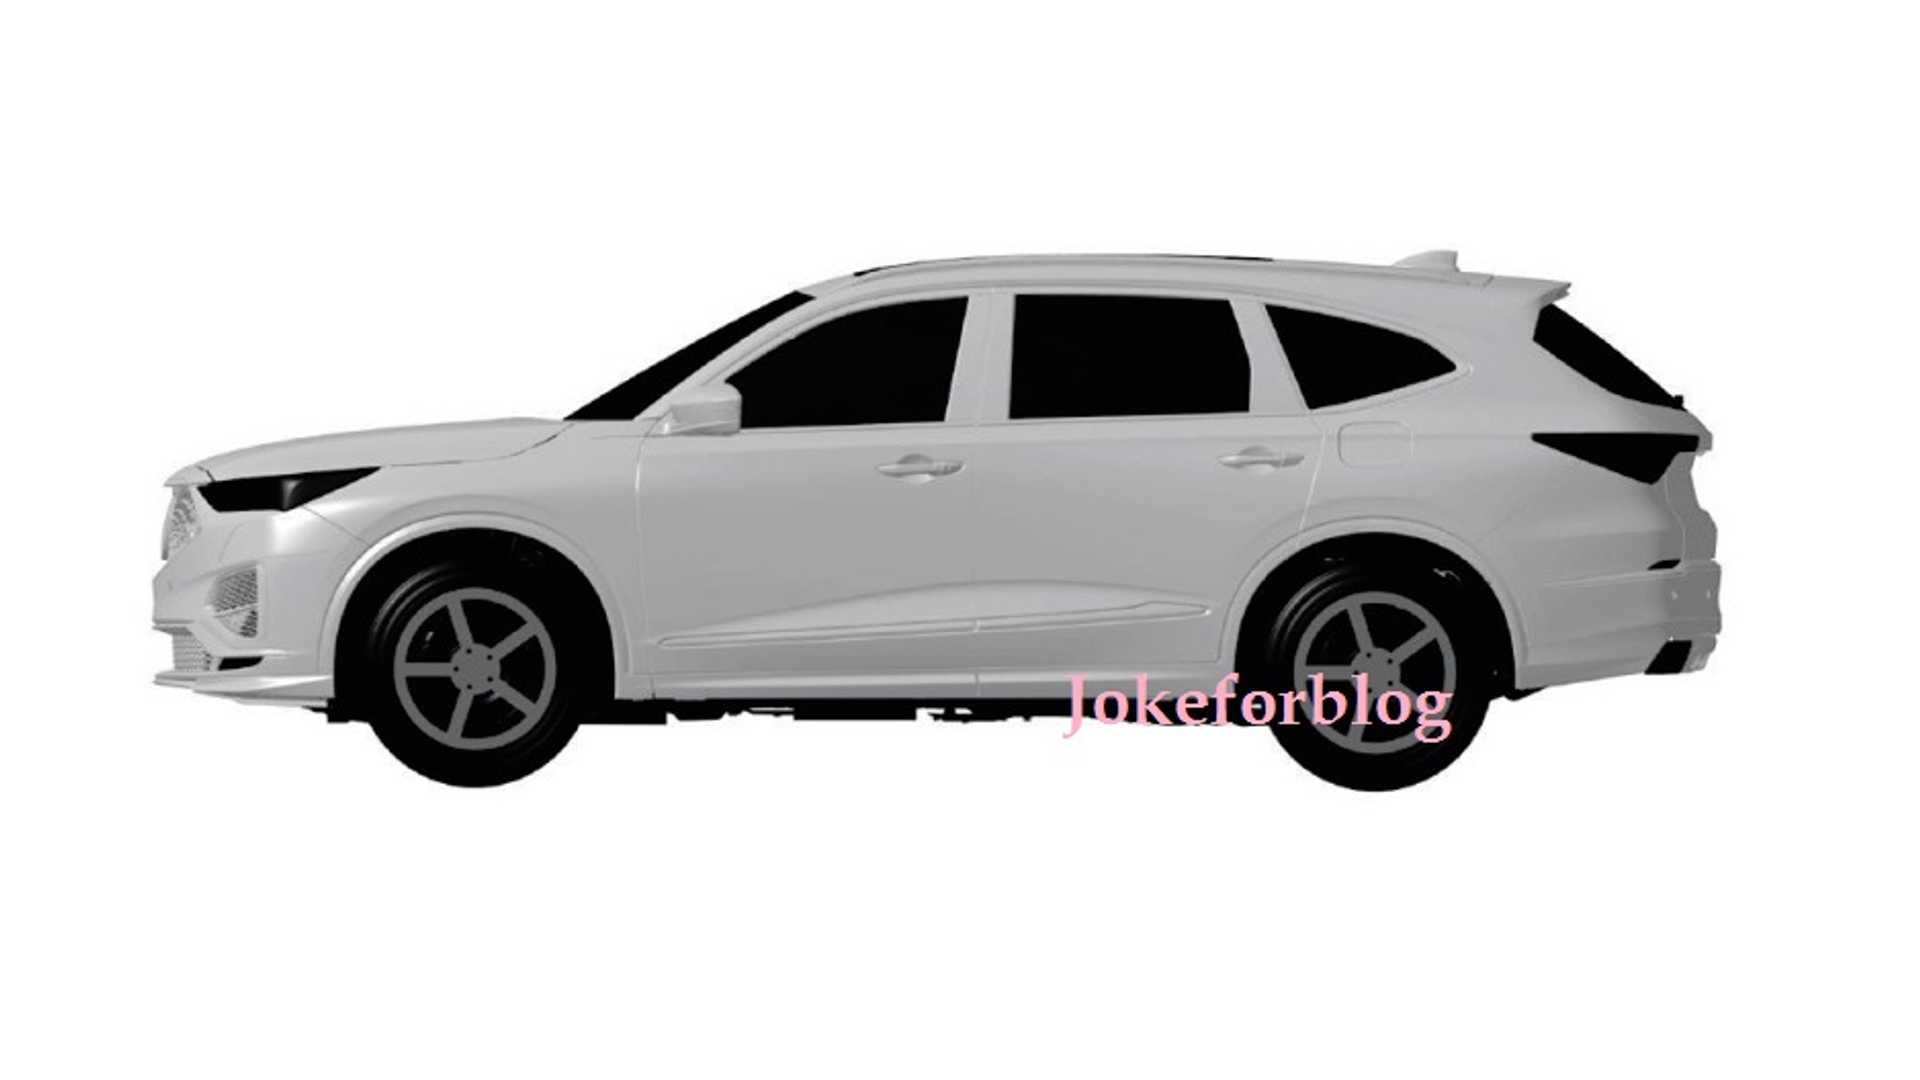 2021 Acura Mdx Leaked Again This Time In Patent Images